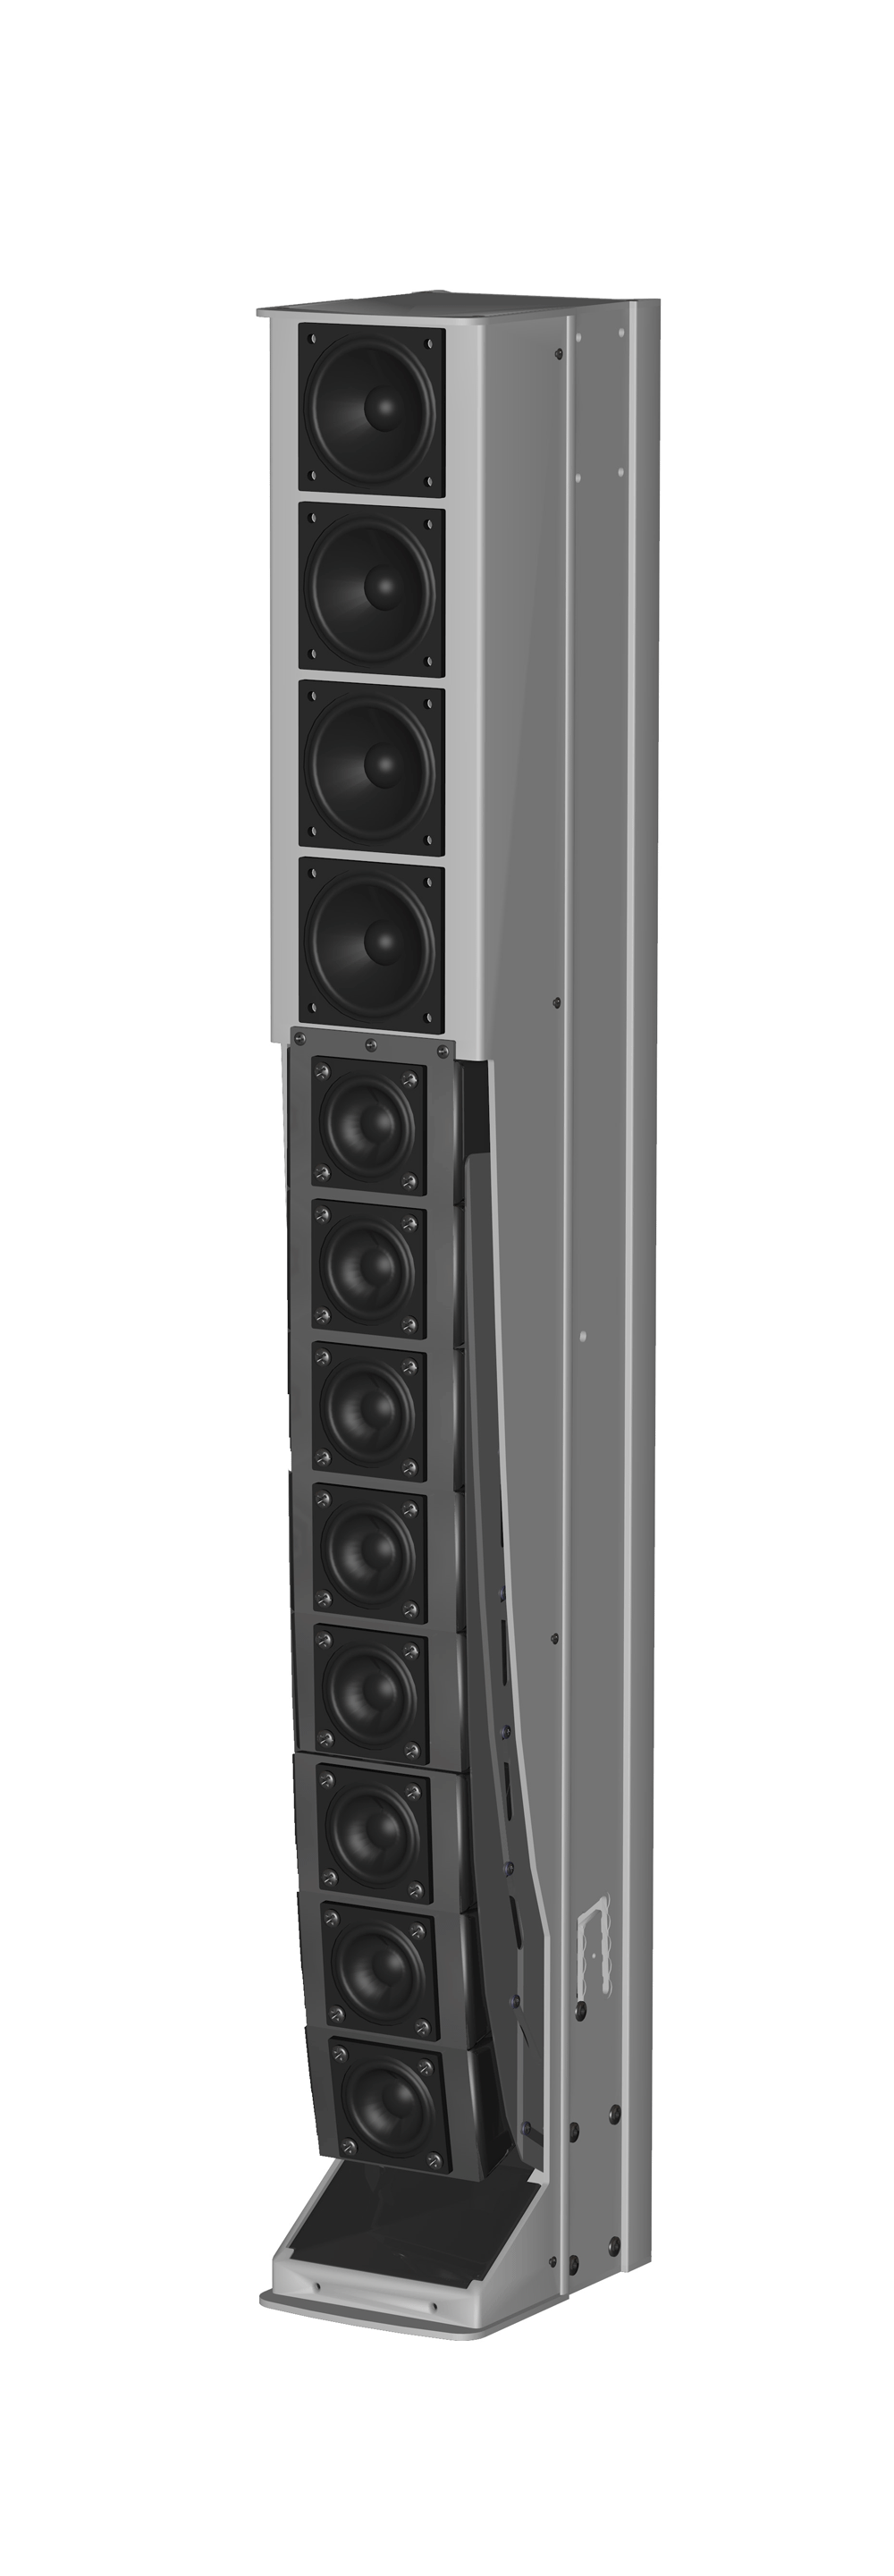 Toa Canada Mechanically Steerable Line Array